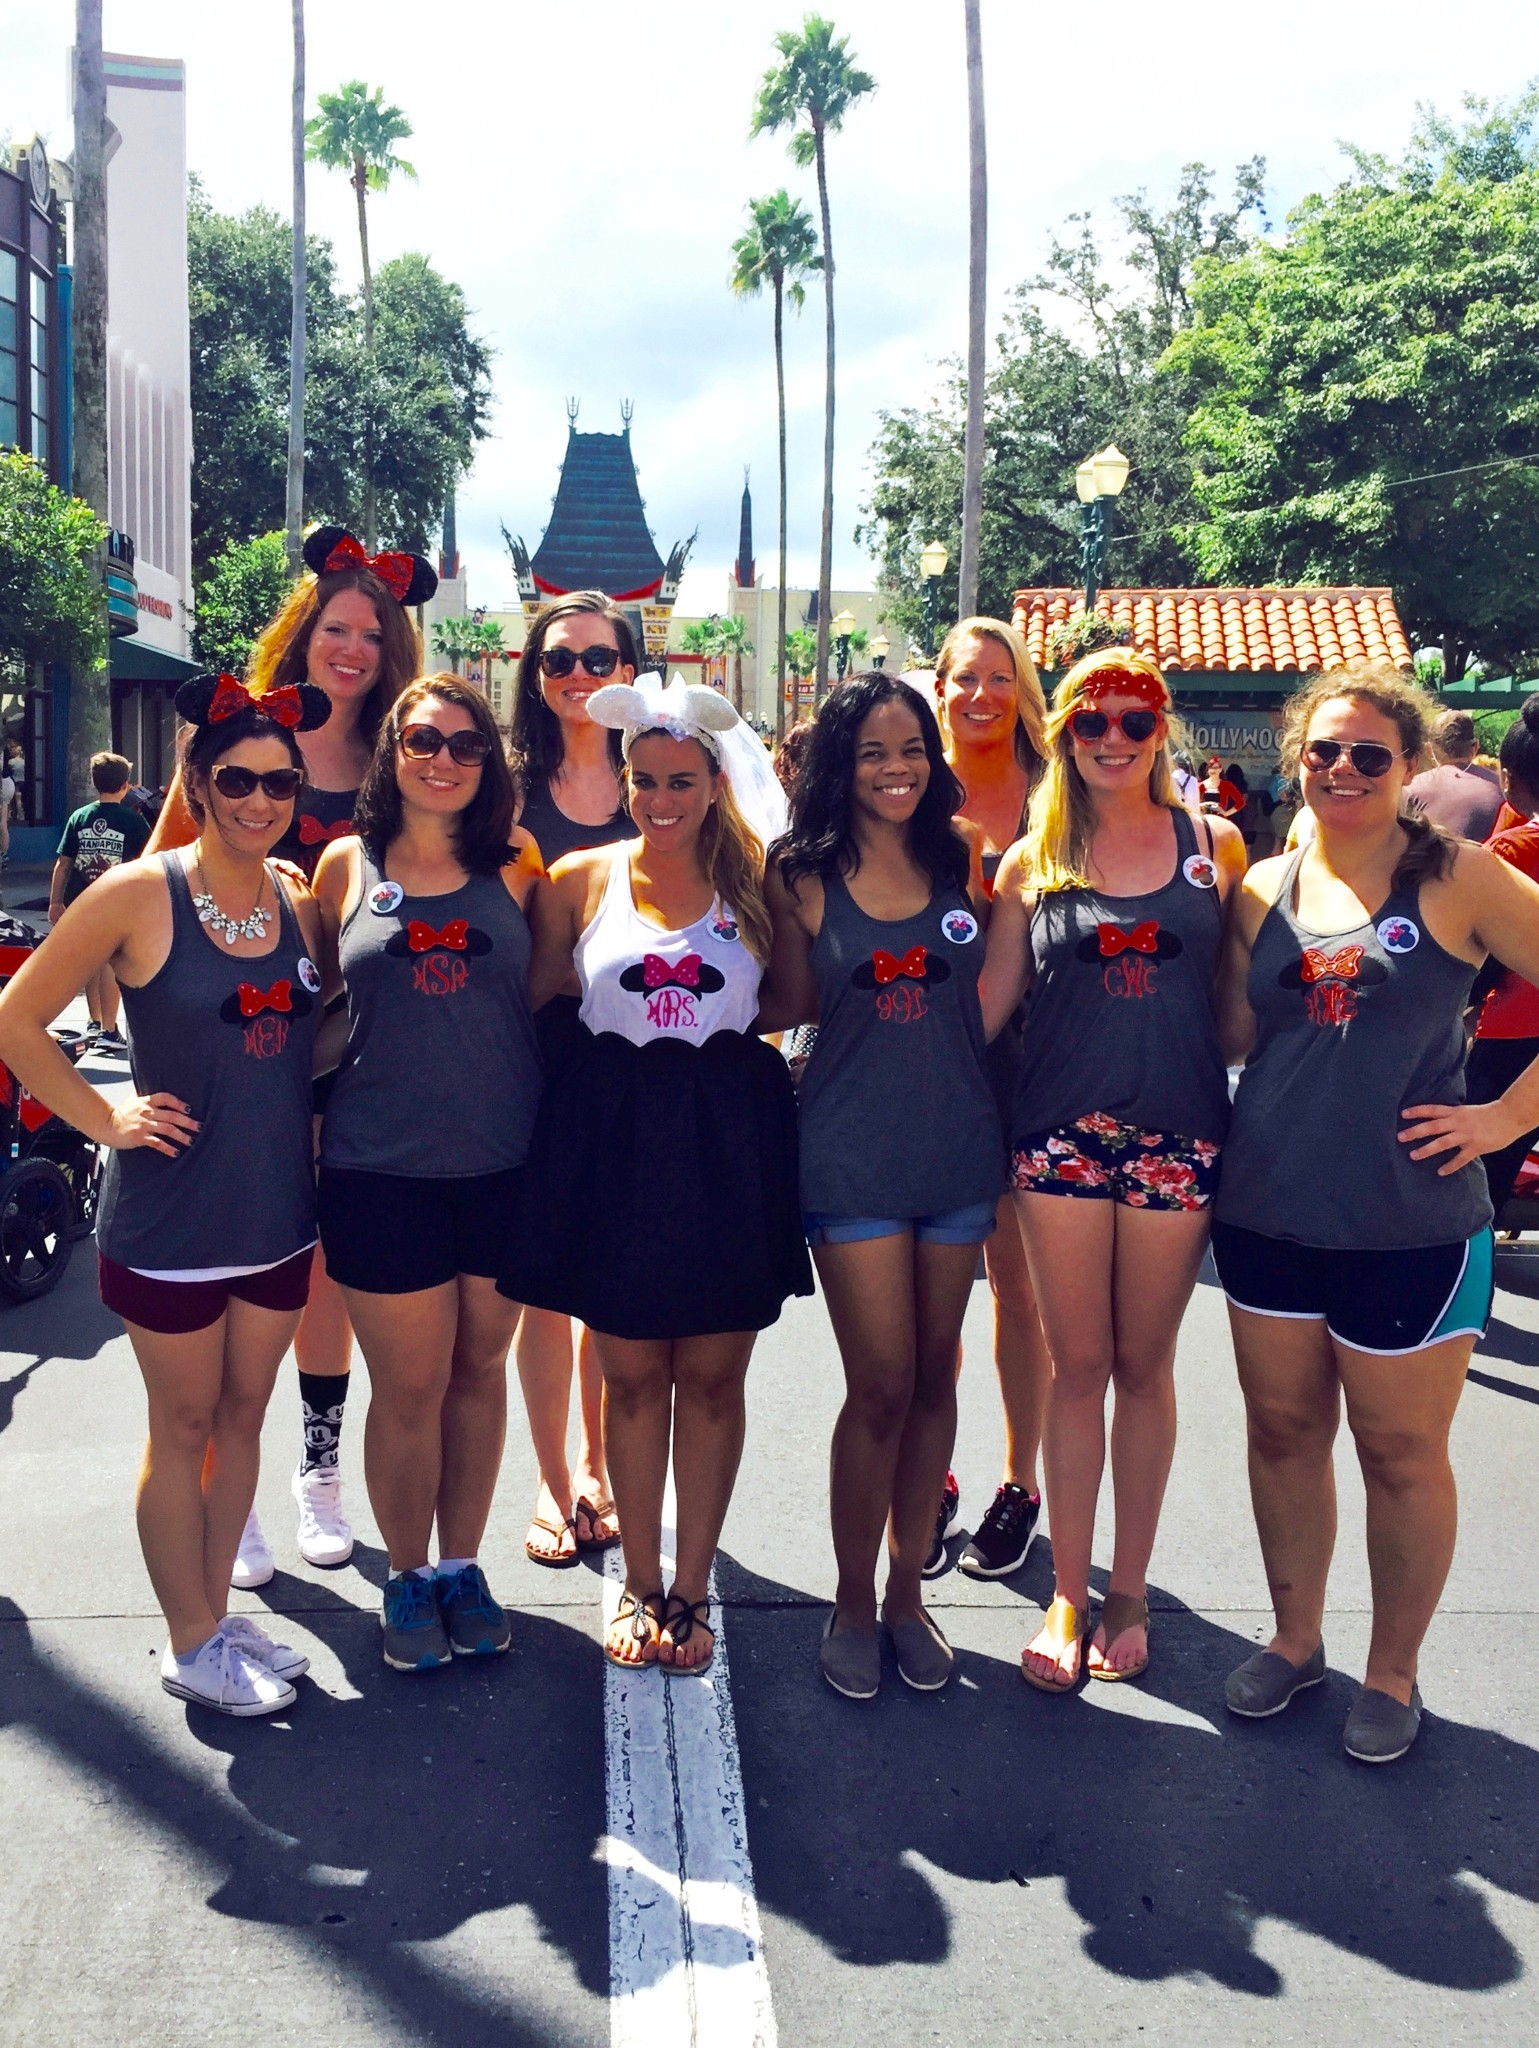 Walt Disney World Bachelorette Party Monogrammed Tank Tops